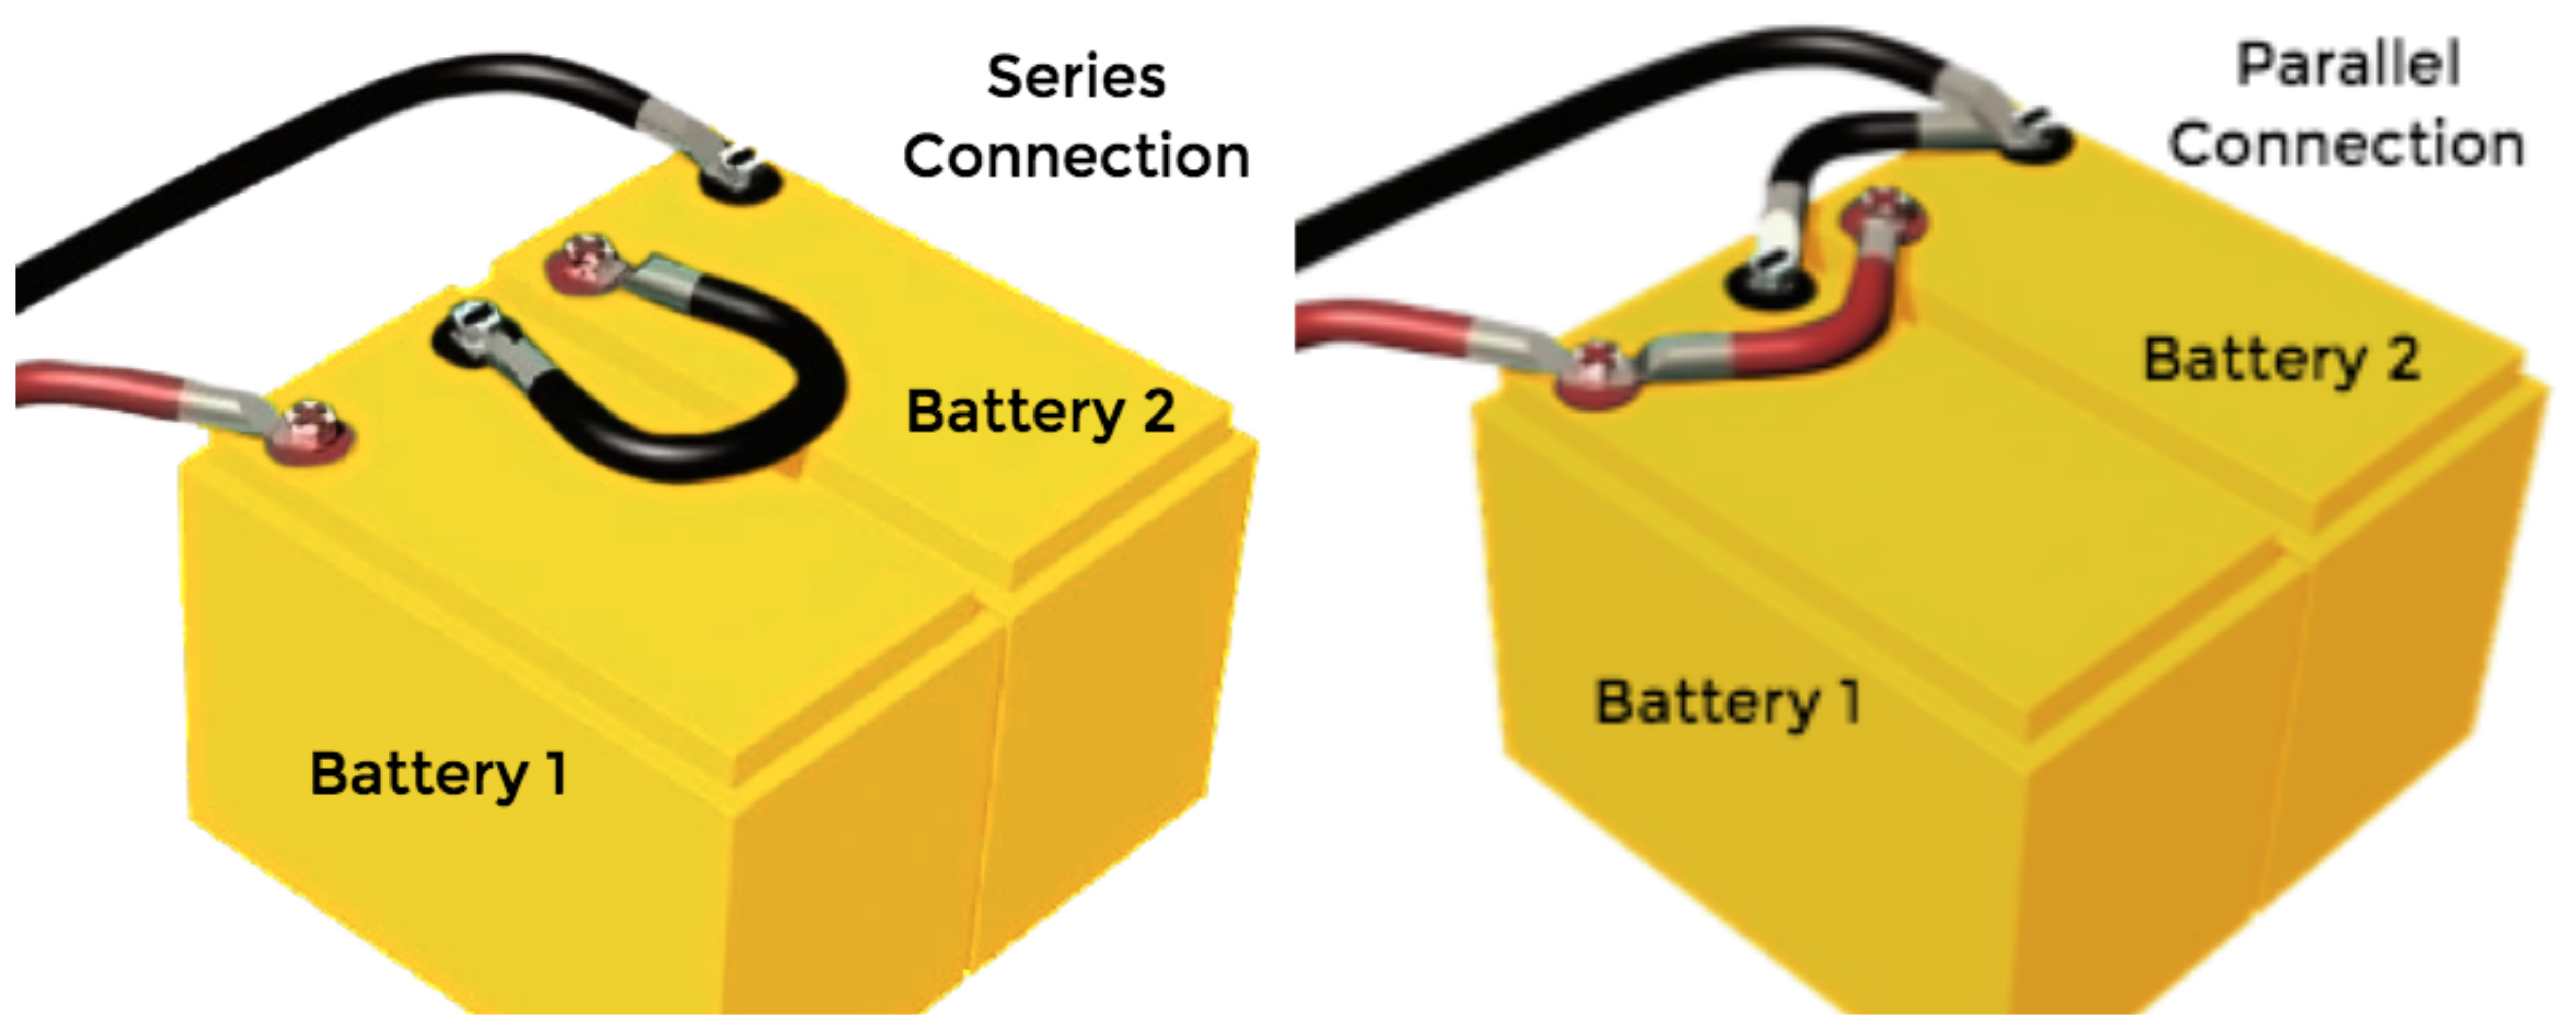 Series v Parallel Connection